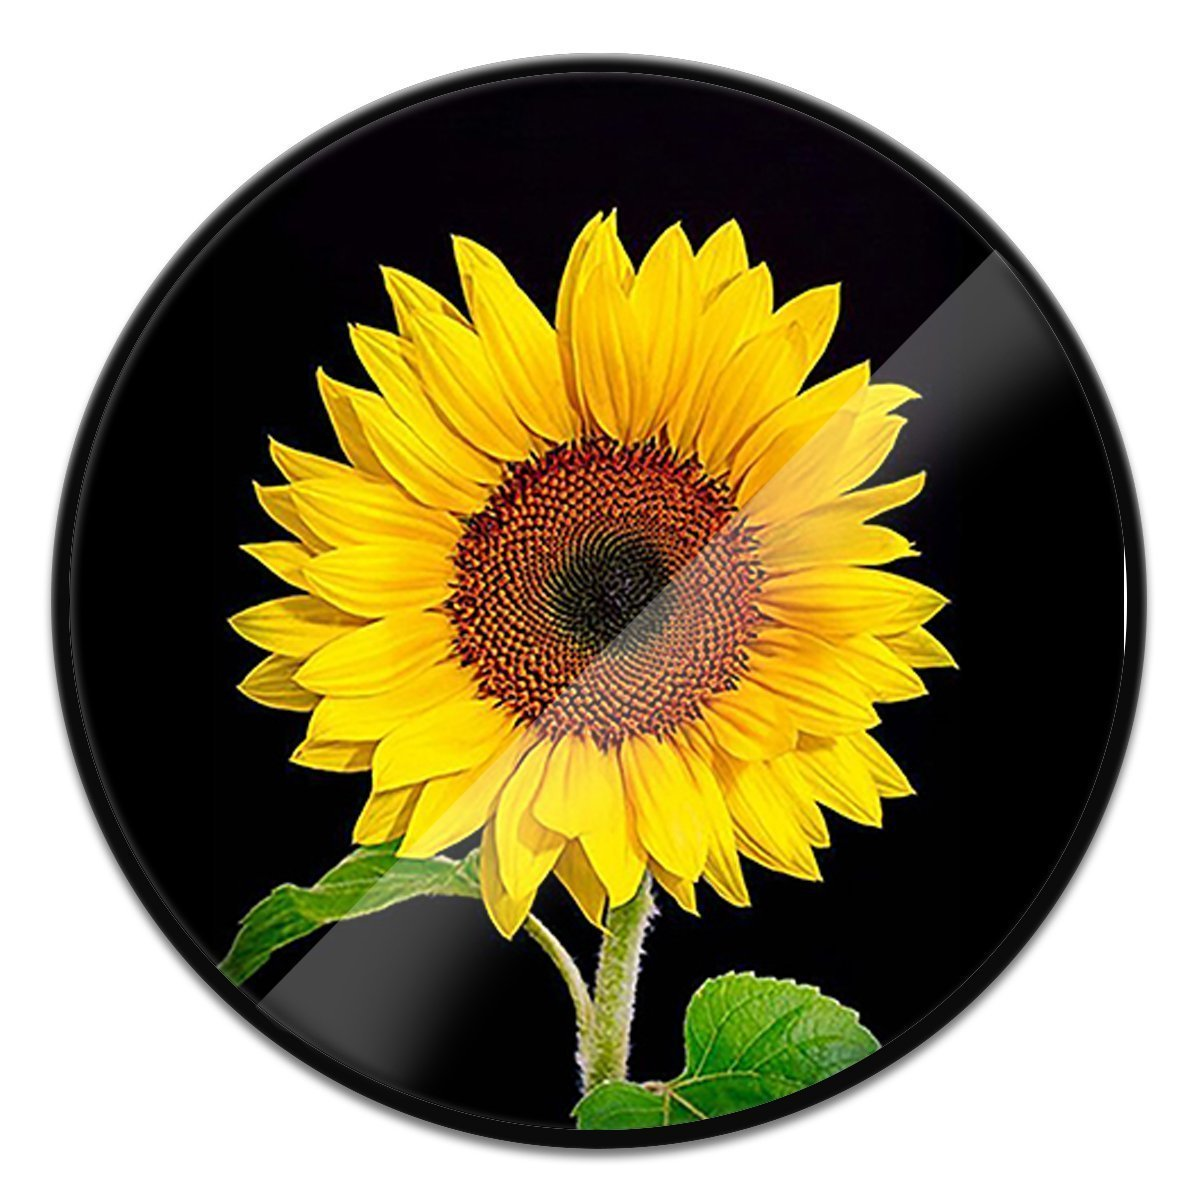 BALAVO Multi-Function Mounts and Stands, Expanding Stand Pop Grip Mount Sockets (Sunflower)